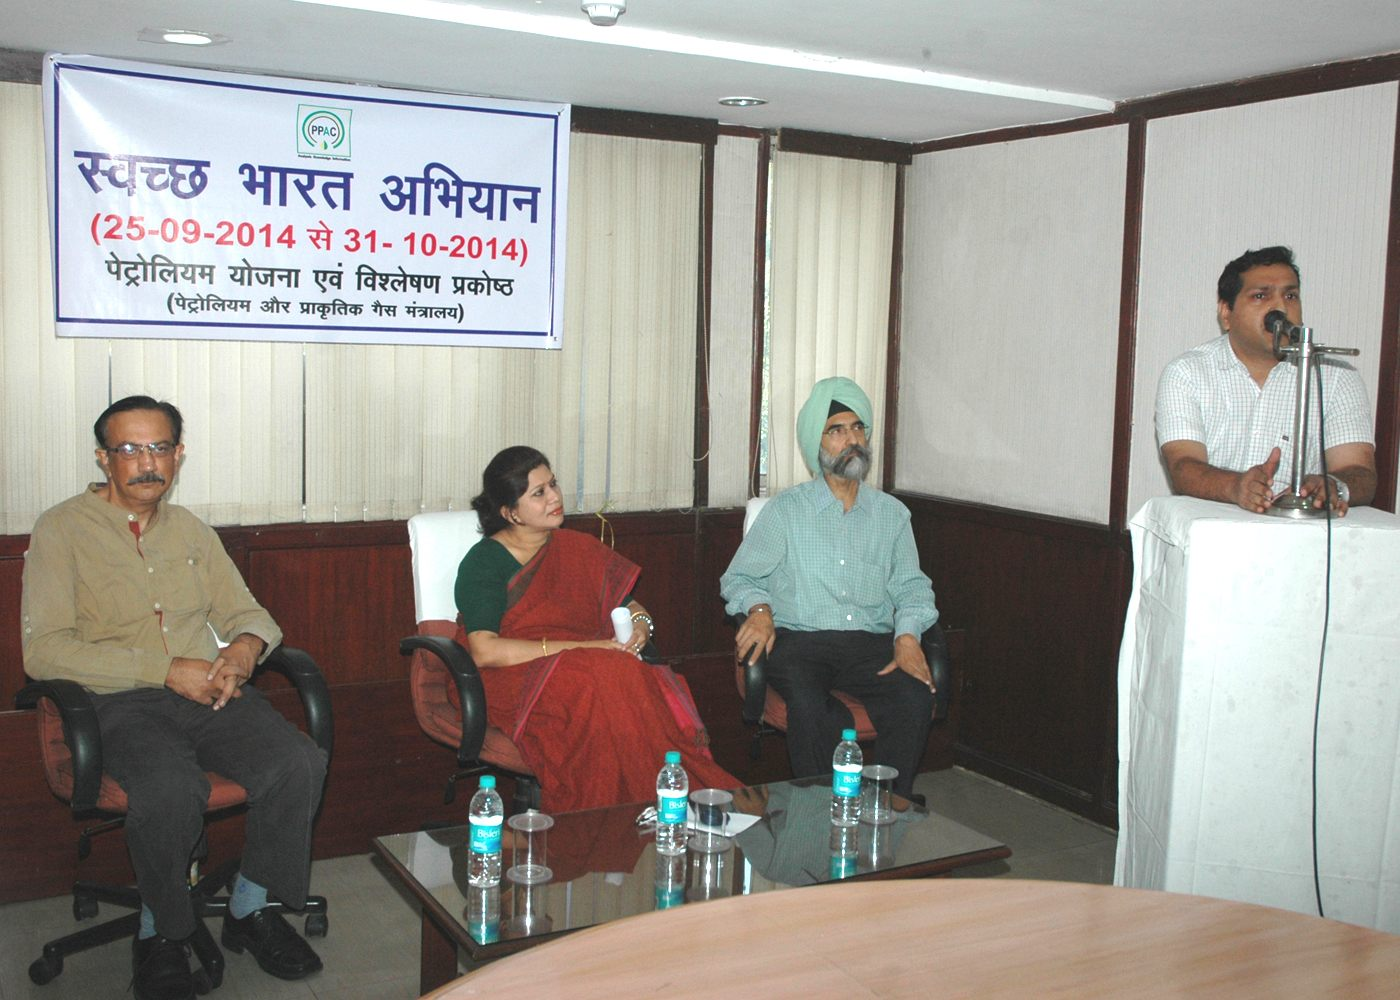 Officers Speaking on the occasion of Swachh Bharat Abhiyaan Photo Gallery